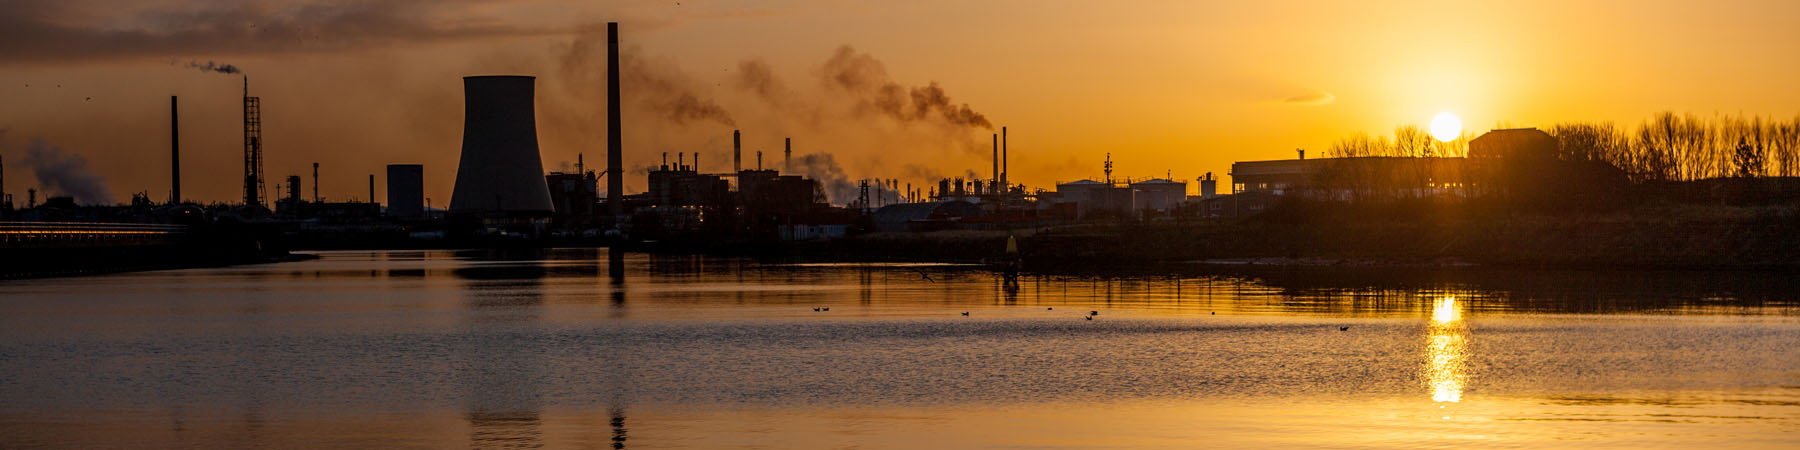 Sunrise - looking along the ship canal at Ellesmere Port